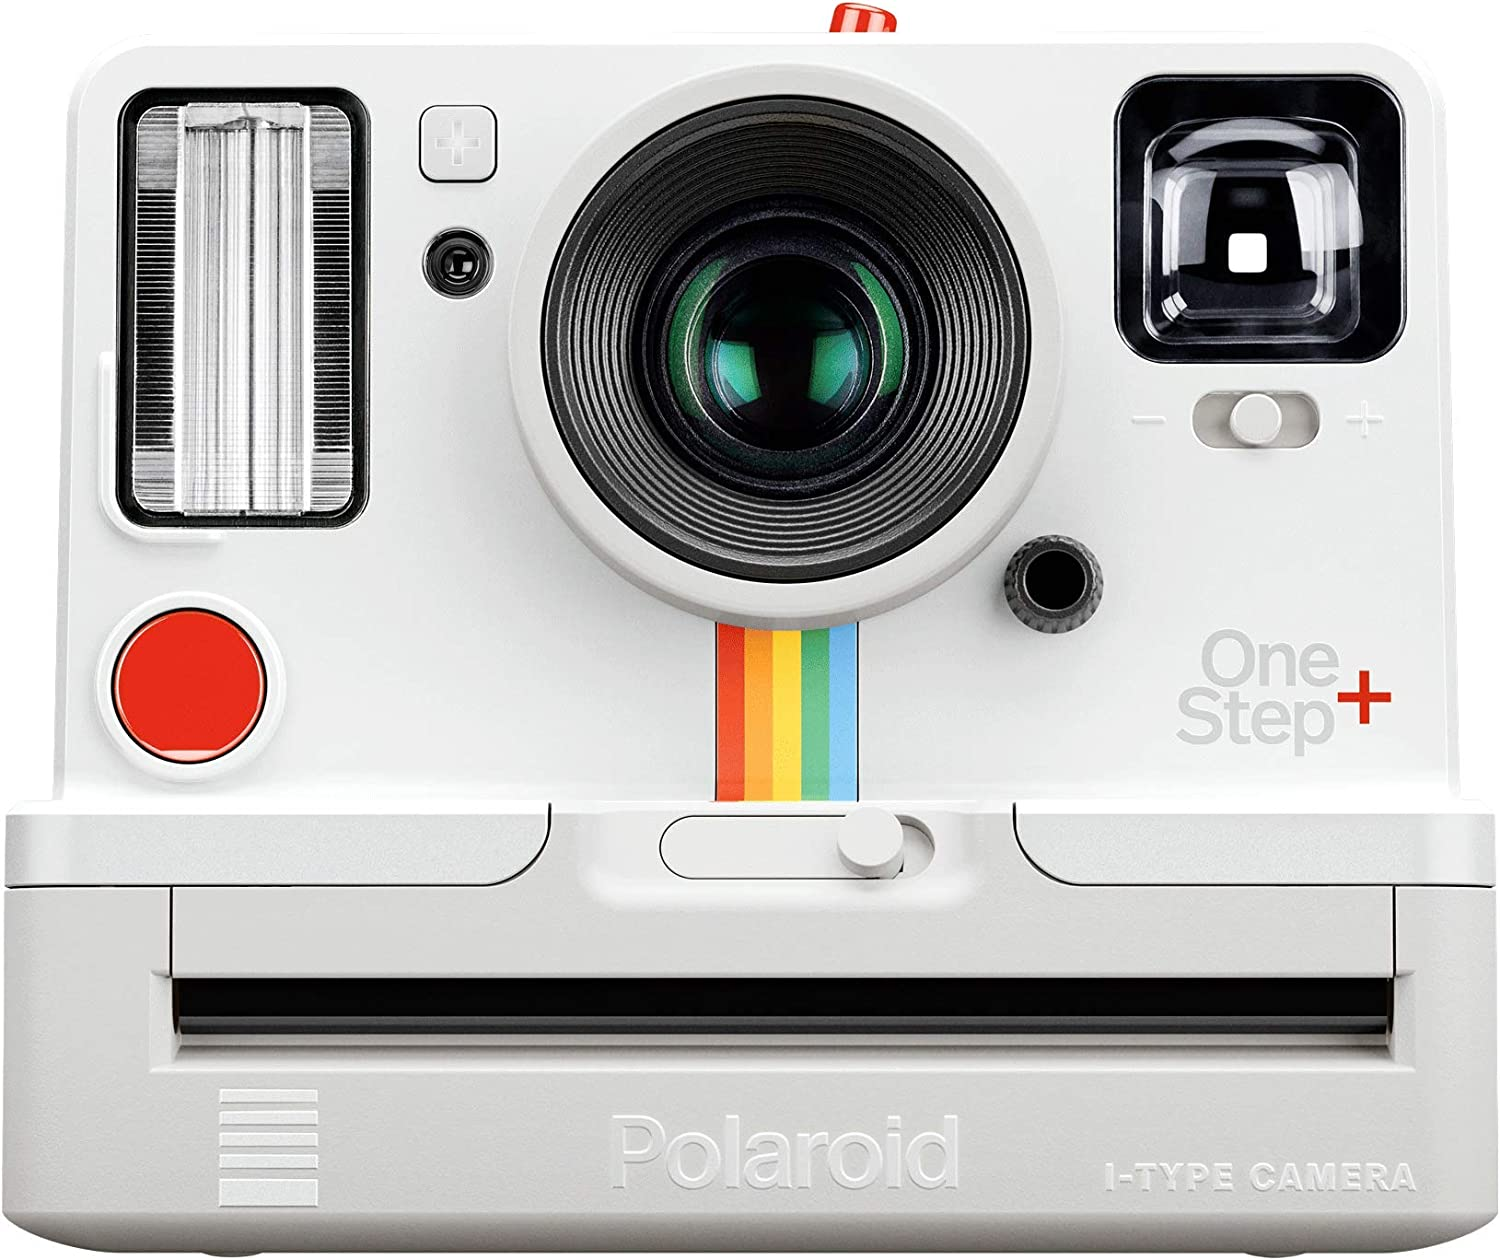 Amazon Com Polaroid Onestep White 9015 Bluetooth Connected Instant Film Camera Camera Photo Popular film photo polaroid of good quality and at affordable prices you can buy on aliexpress. polaroid onestep white 9015 bluetooth connected instant film camera